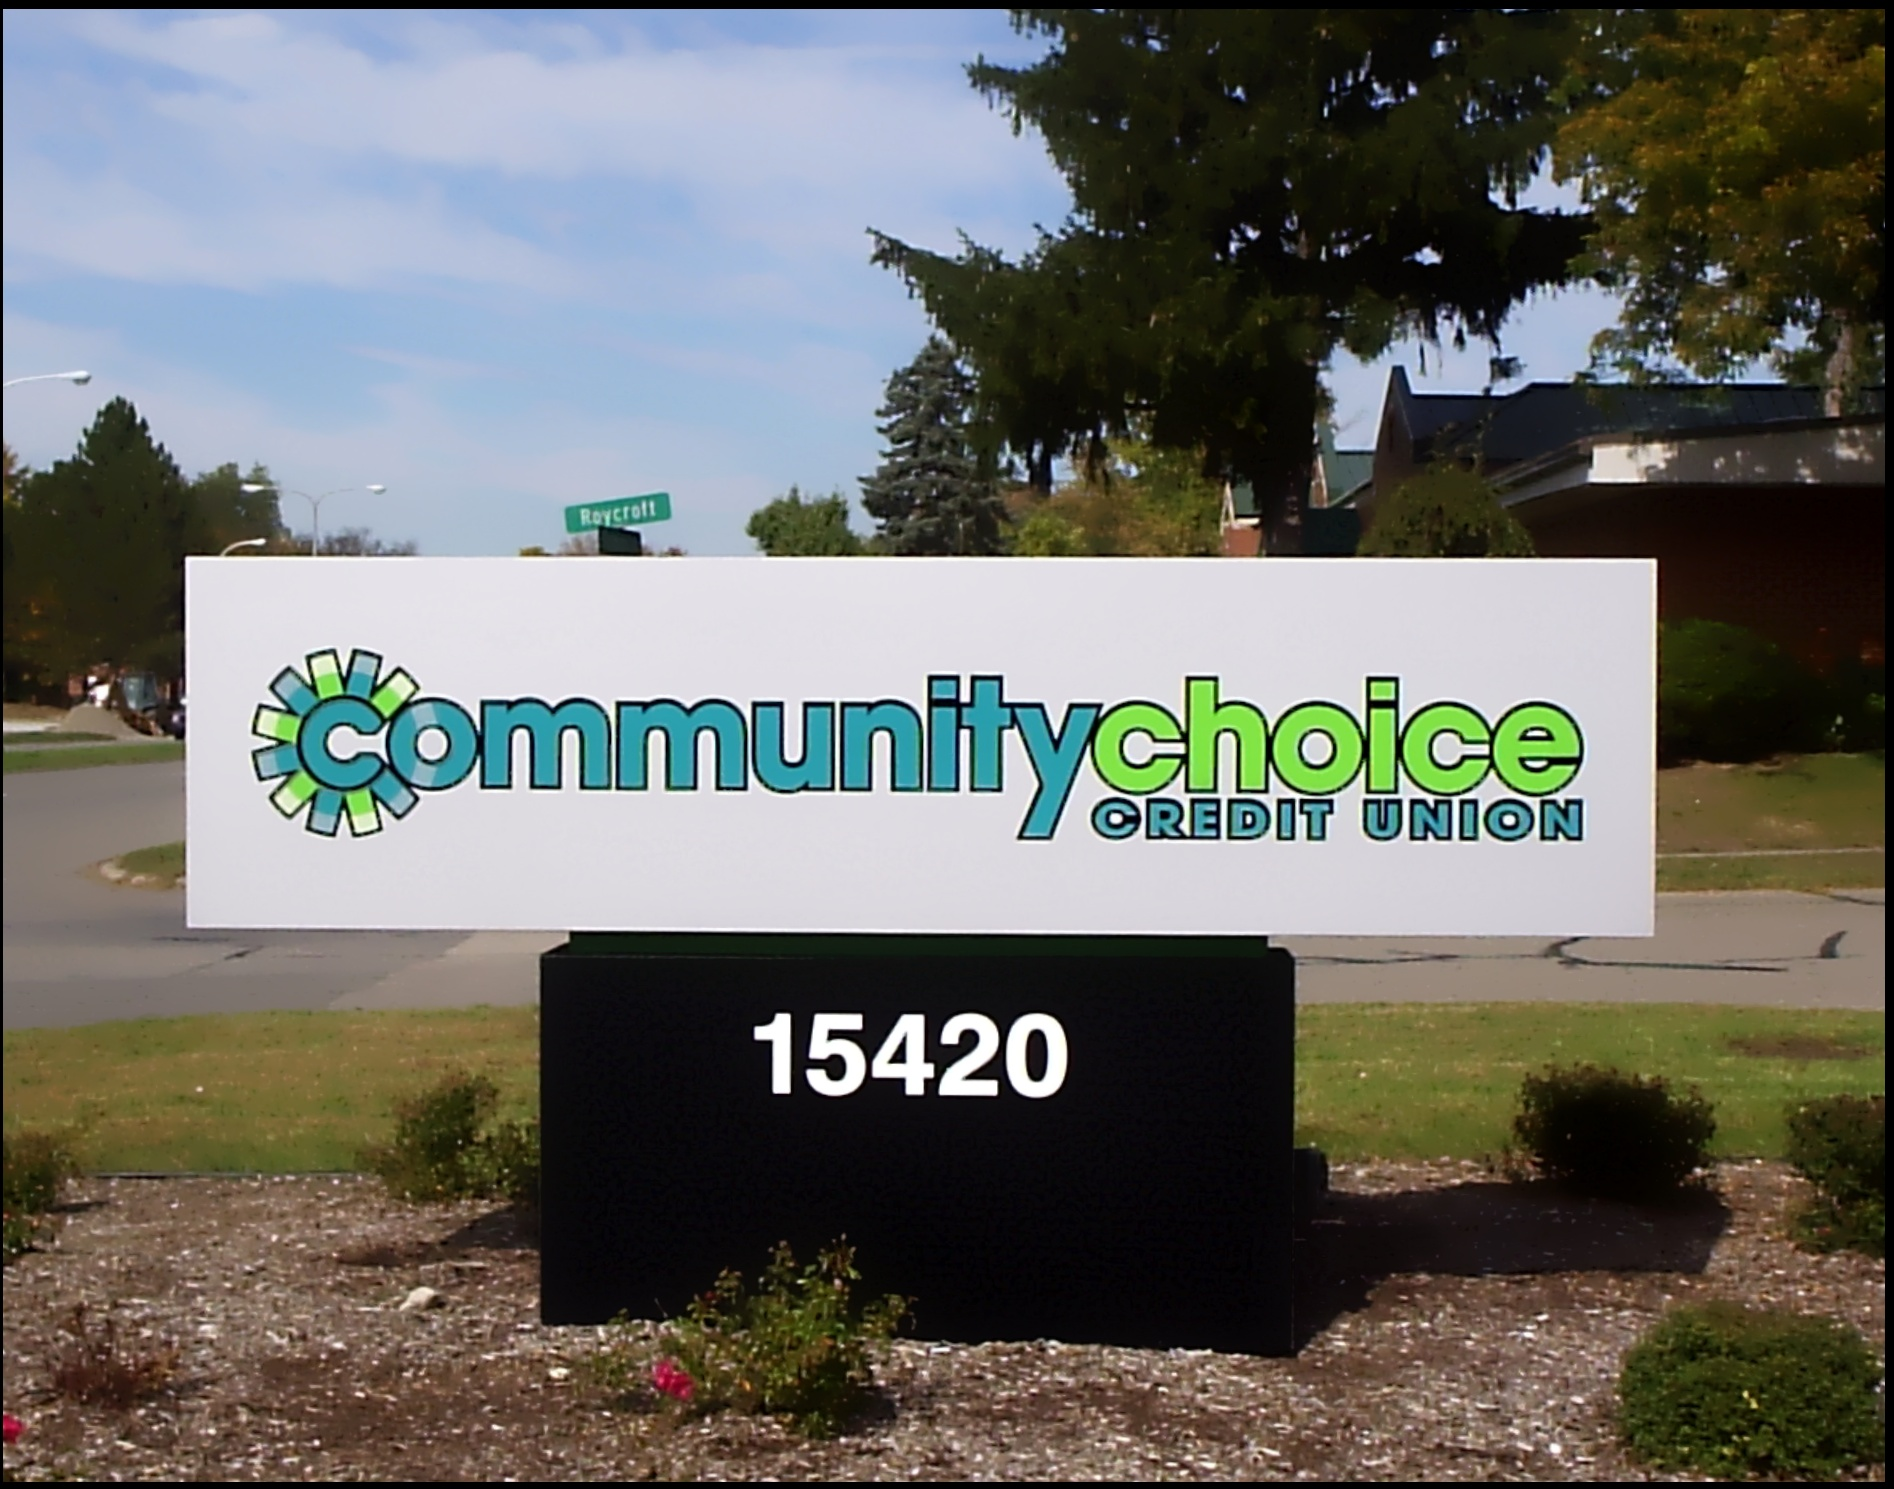 Community Choice Credit Union | Lawn Sign | Signage